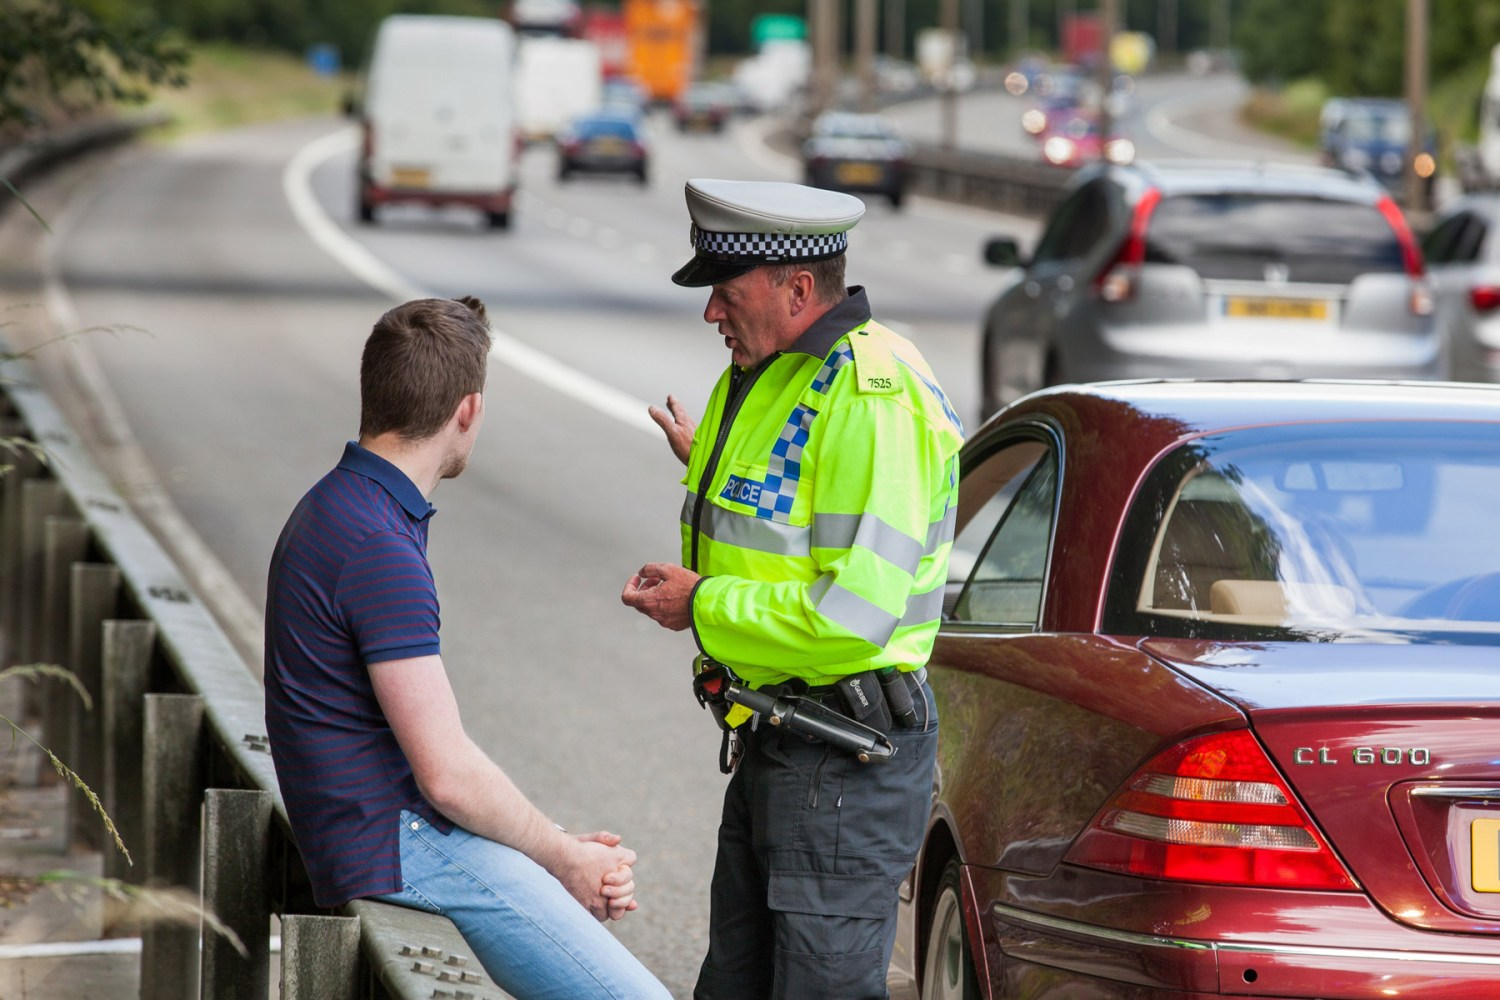 135 drivers hit with lane hogging fines since 2013